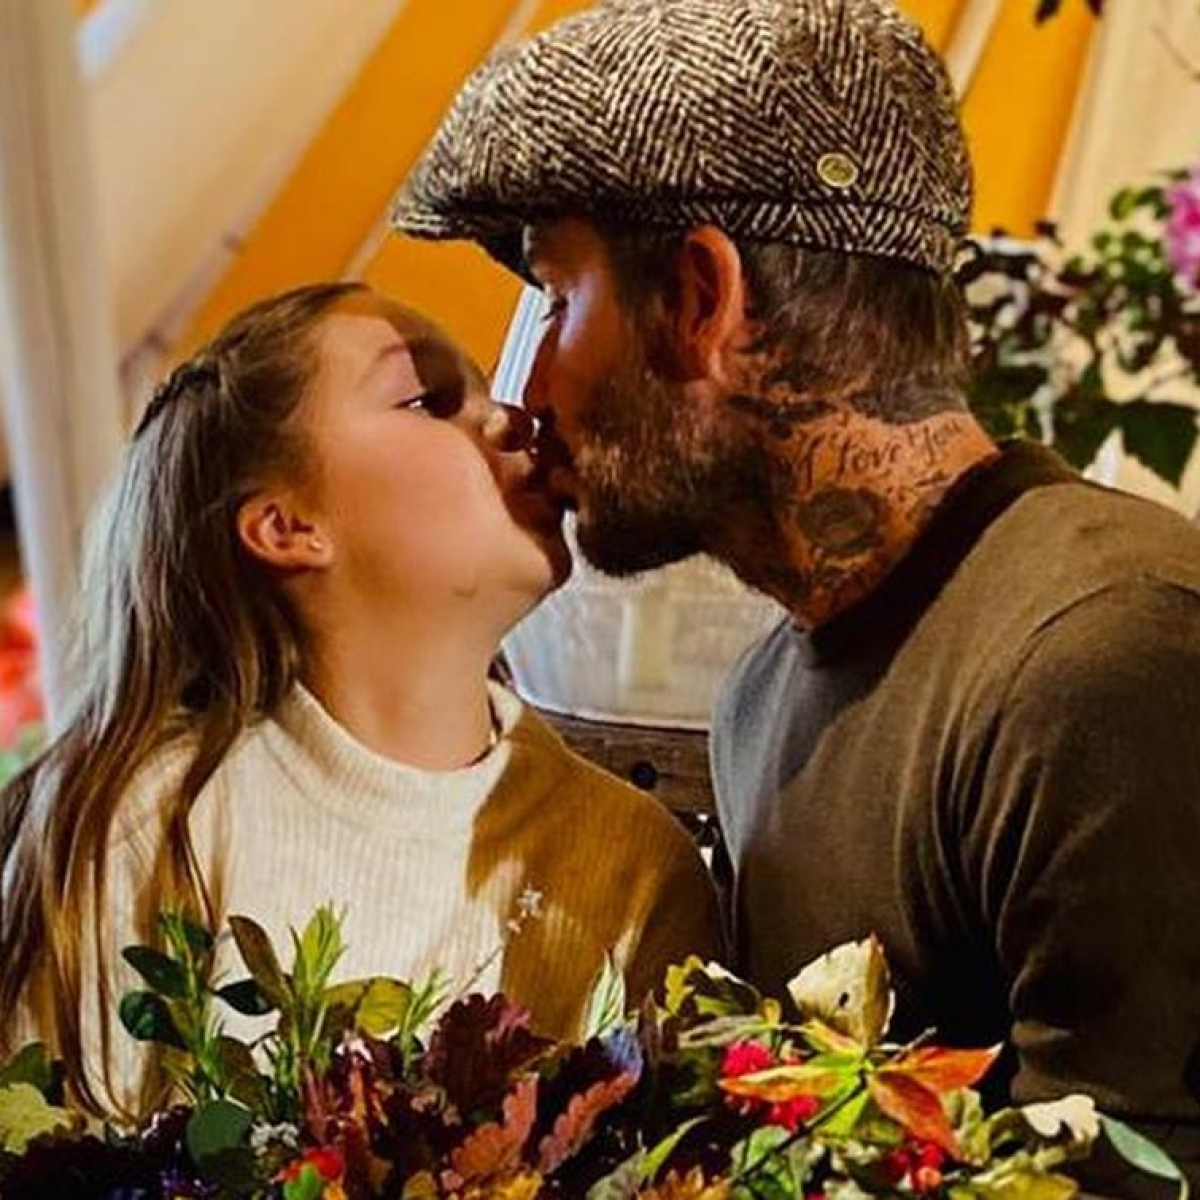 David Beckham fans divided over him kissing 9-year-old daughter Harper on the lips